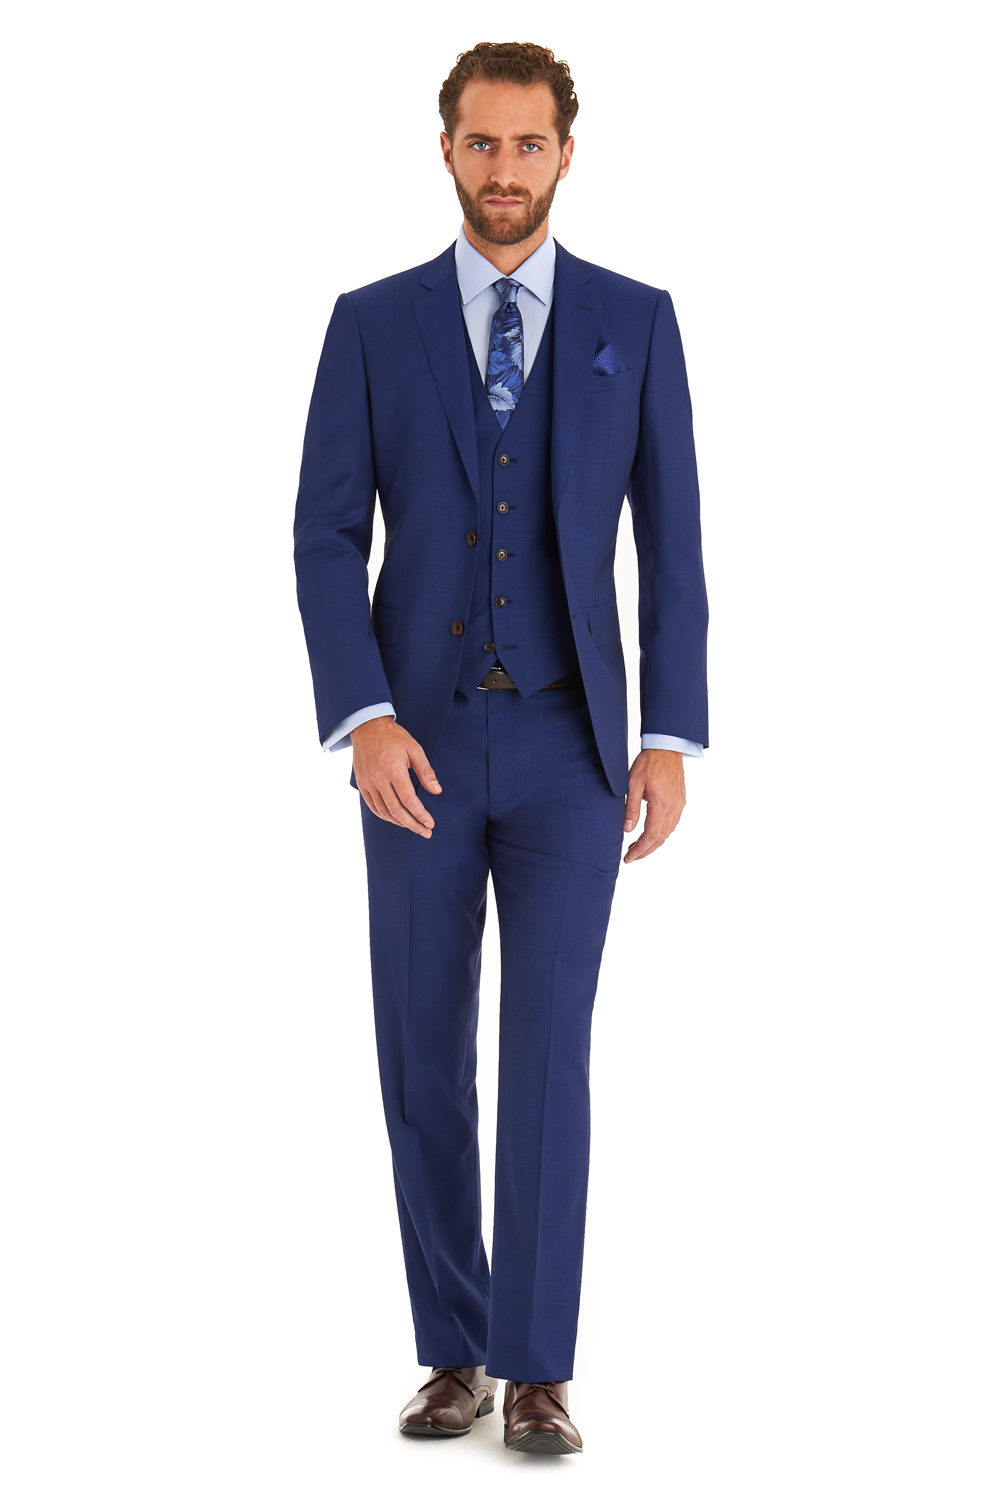 Blue Suits with Brown Shoes Ideas for Men. Blue suits aren't as formal as black ones, and neither are they too informal. They are the ideal in-between. A blue suit paired with brown shoes is a very sophisticated way to dress that's sure to leave a memorable impression on anyone.